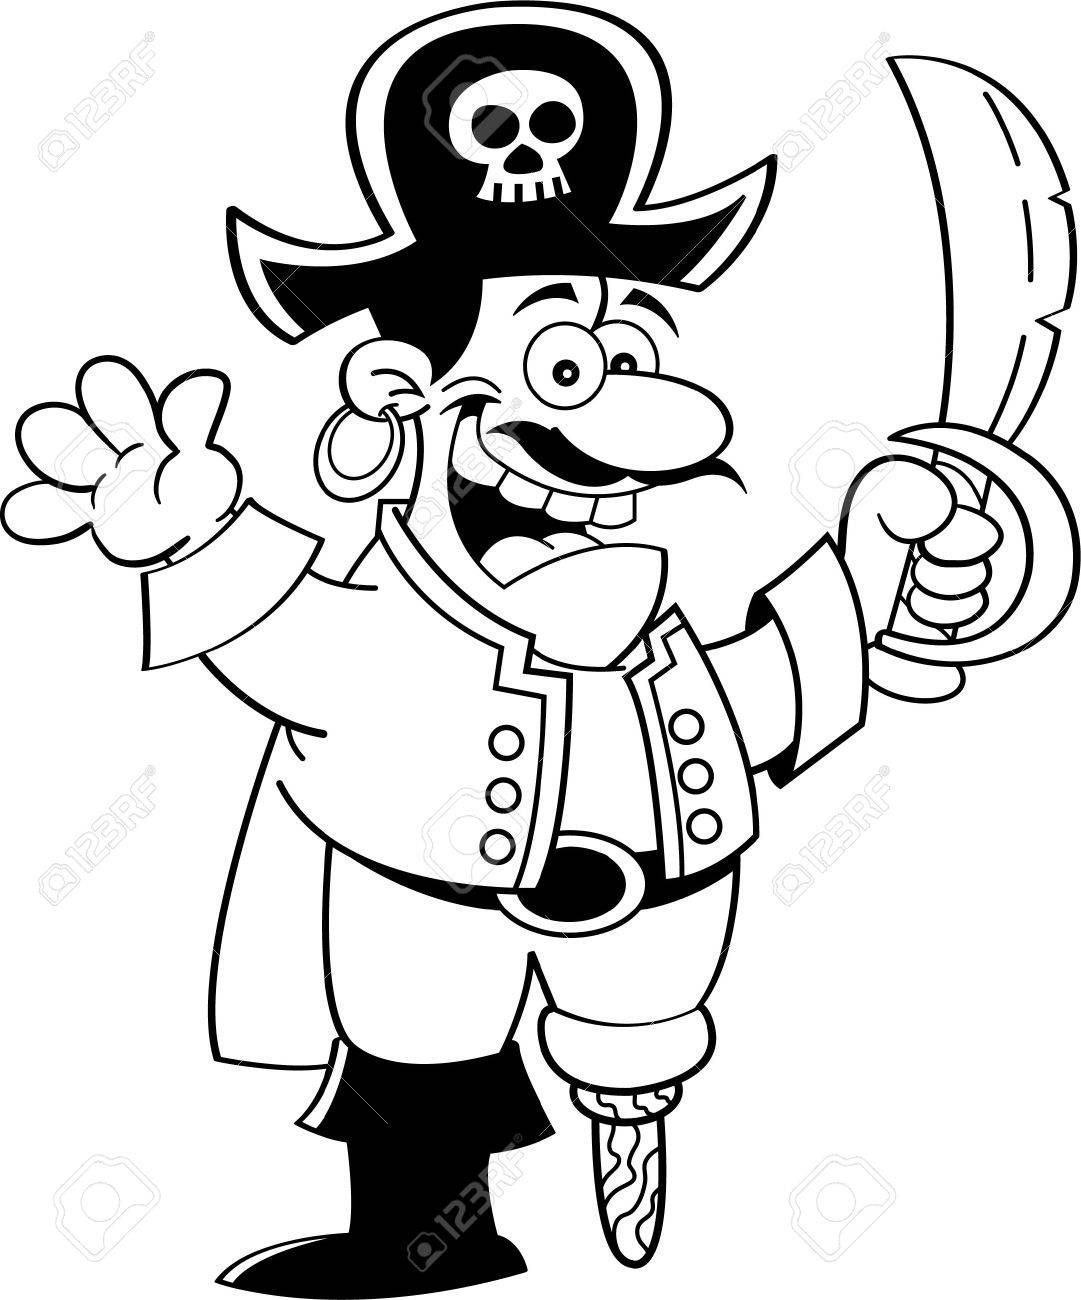 black and white illustration of a pirate holding a sword and